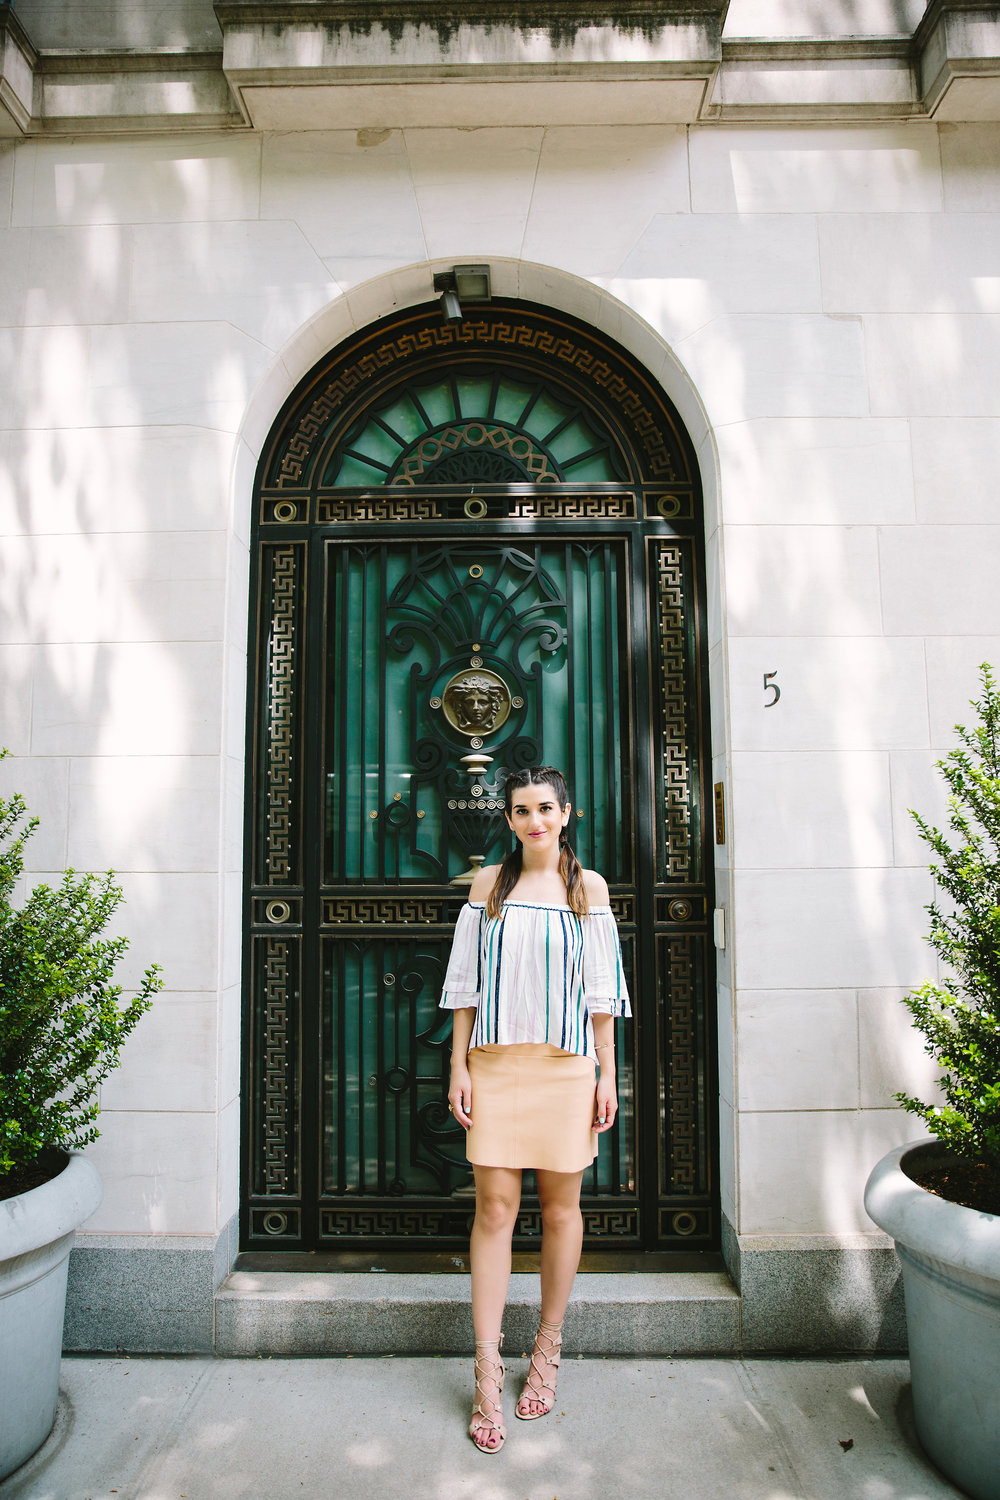 Striped Off-The-Shoulder Shoulder Top Shop Trescool Louboutins & Love Fashion Blog Esther Santer NYC Street Style Blogger Outfit OOTD Mini Skirt Pastel Pink Trendy Ivanka Trump Nude Lace Up Heels Gold Ring Hairstyle Boxer Braid Summer Inspo Photoshoot.jpg